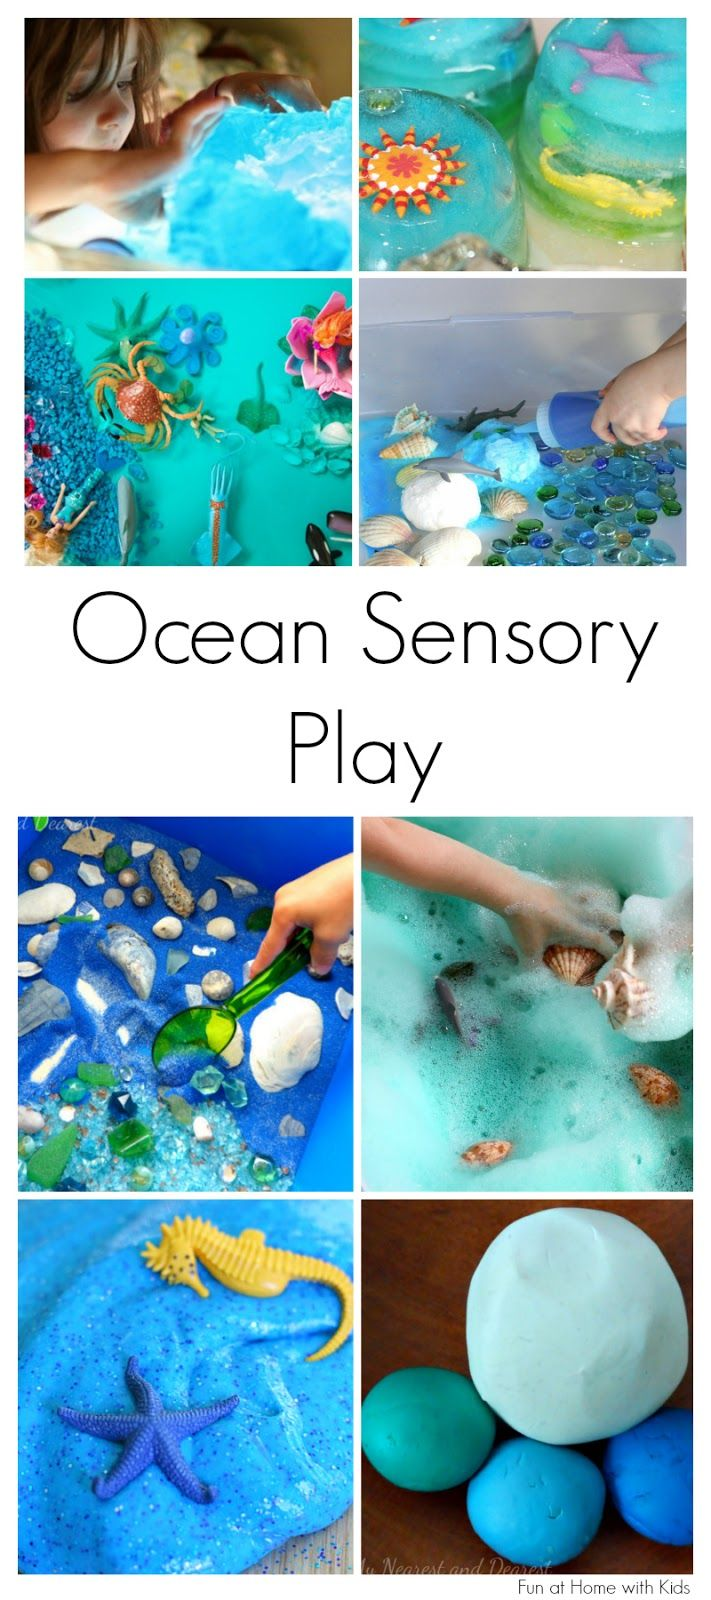 15 of the best ideas for Ocean-themed Sensory Play.  Includes ideas for babies, toddlers, preschoolers, and older children.  From Fun at Home with Kids